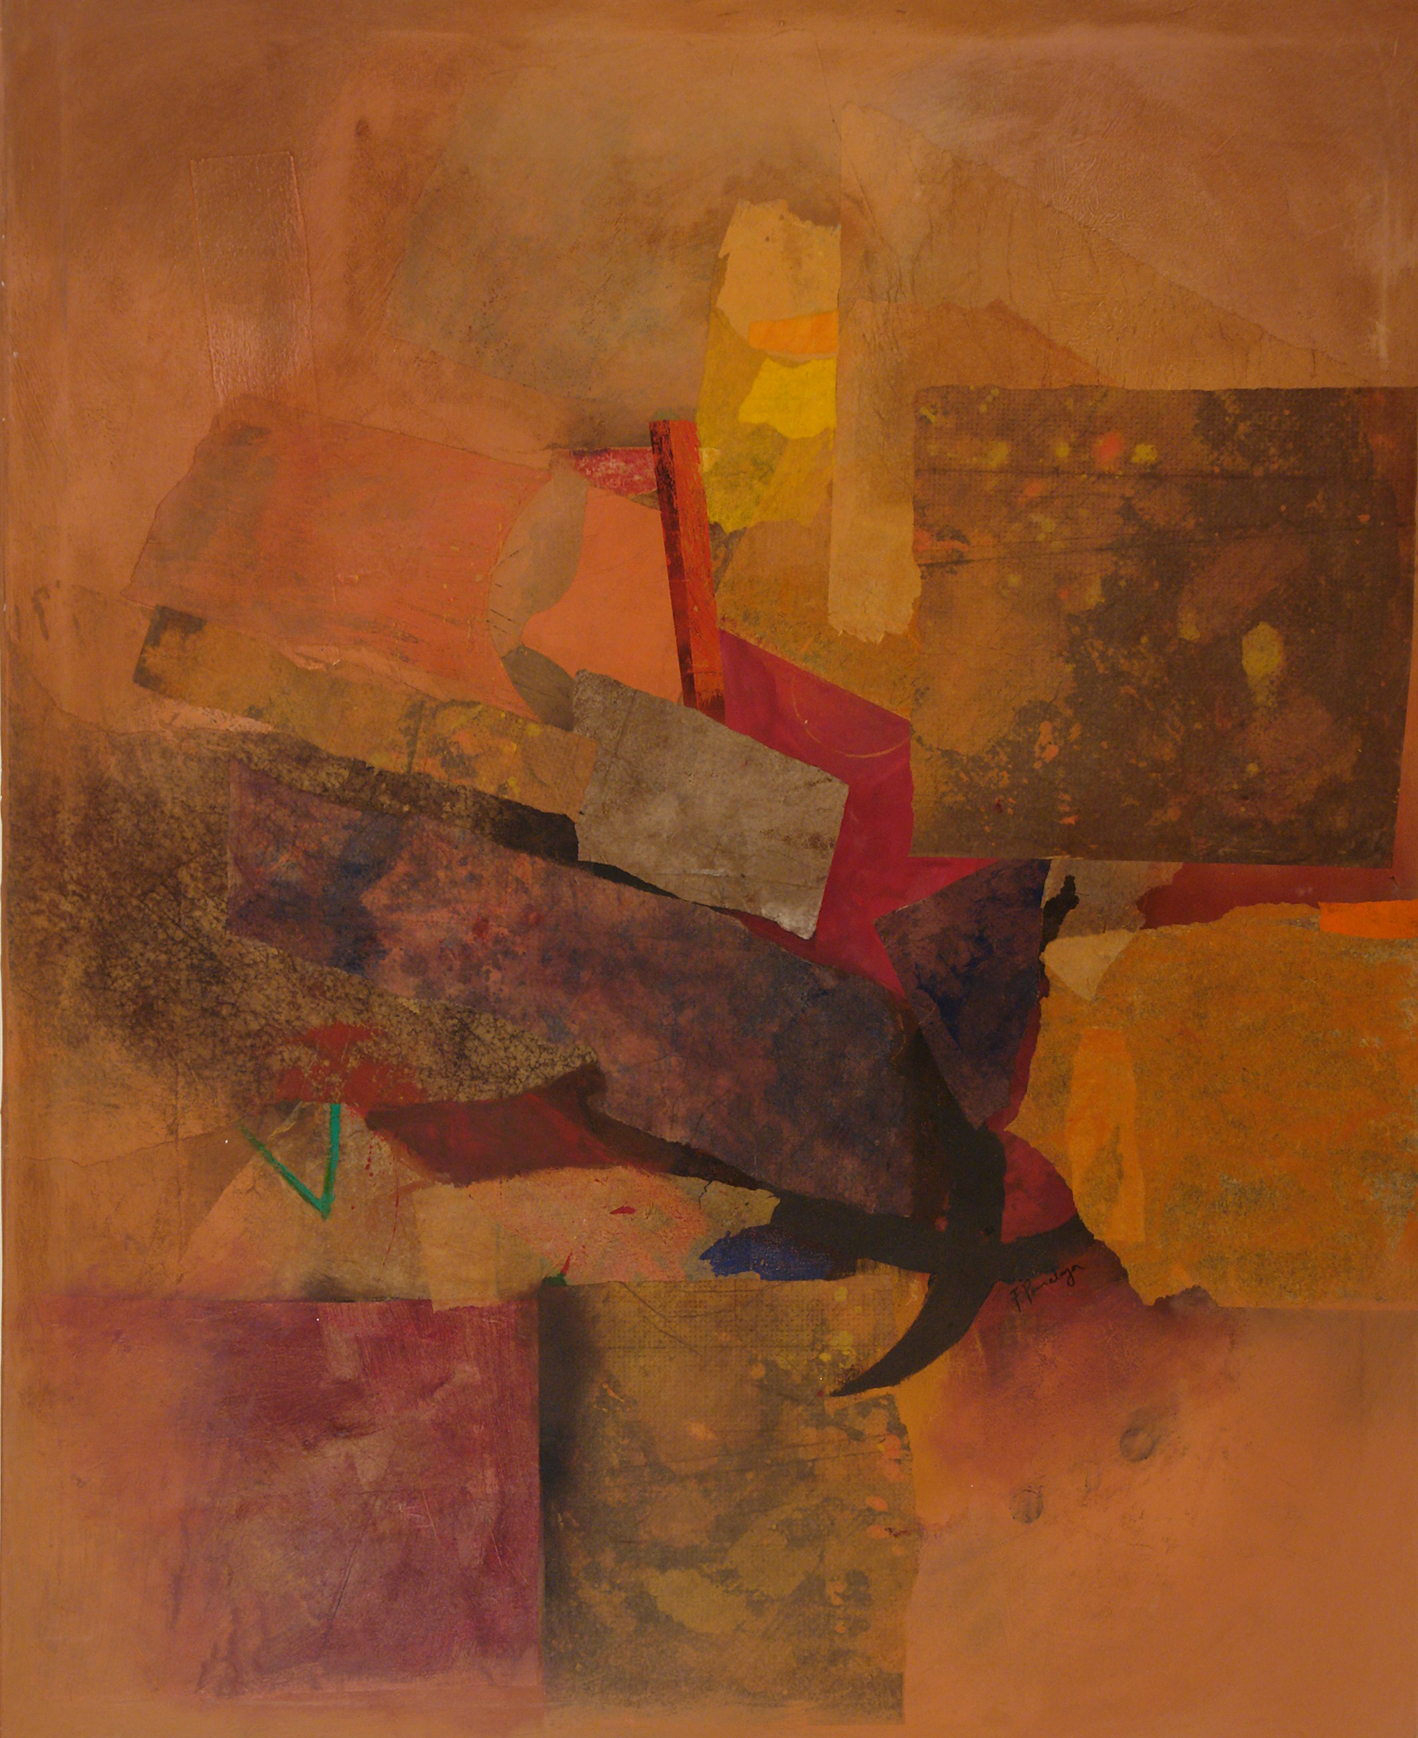 Fernando Pomolaza, Untitled, 60 x 48 in., mixed media collag on canvas, $15,000.jpg